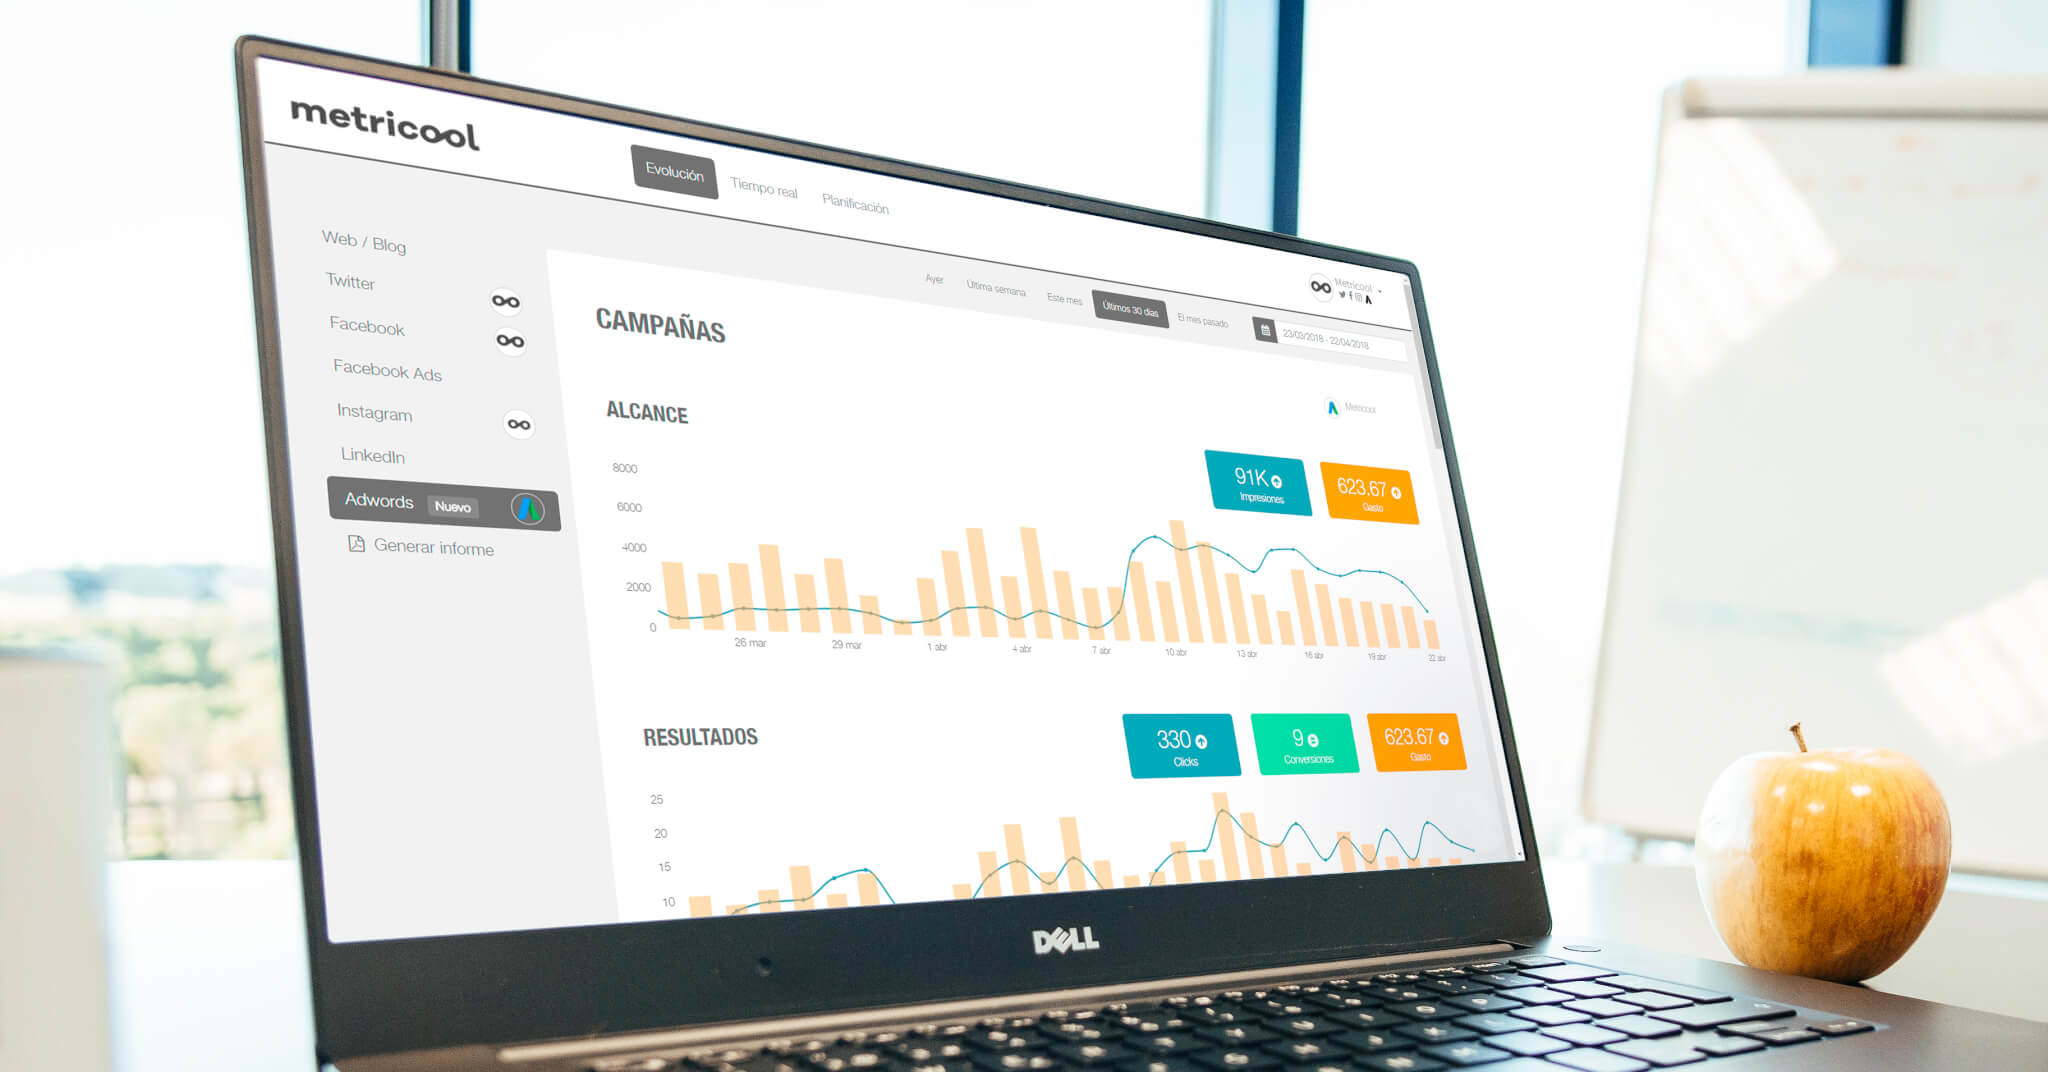 Online advertising with Metricool: All its features